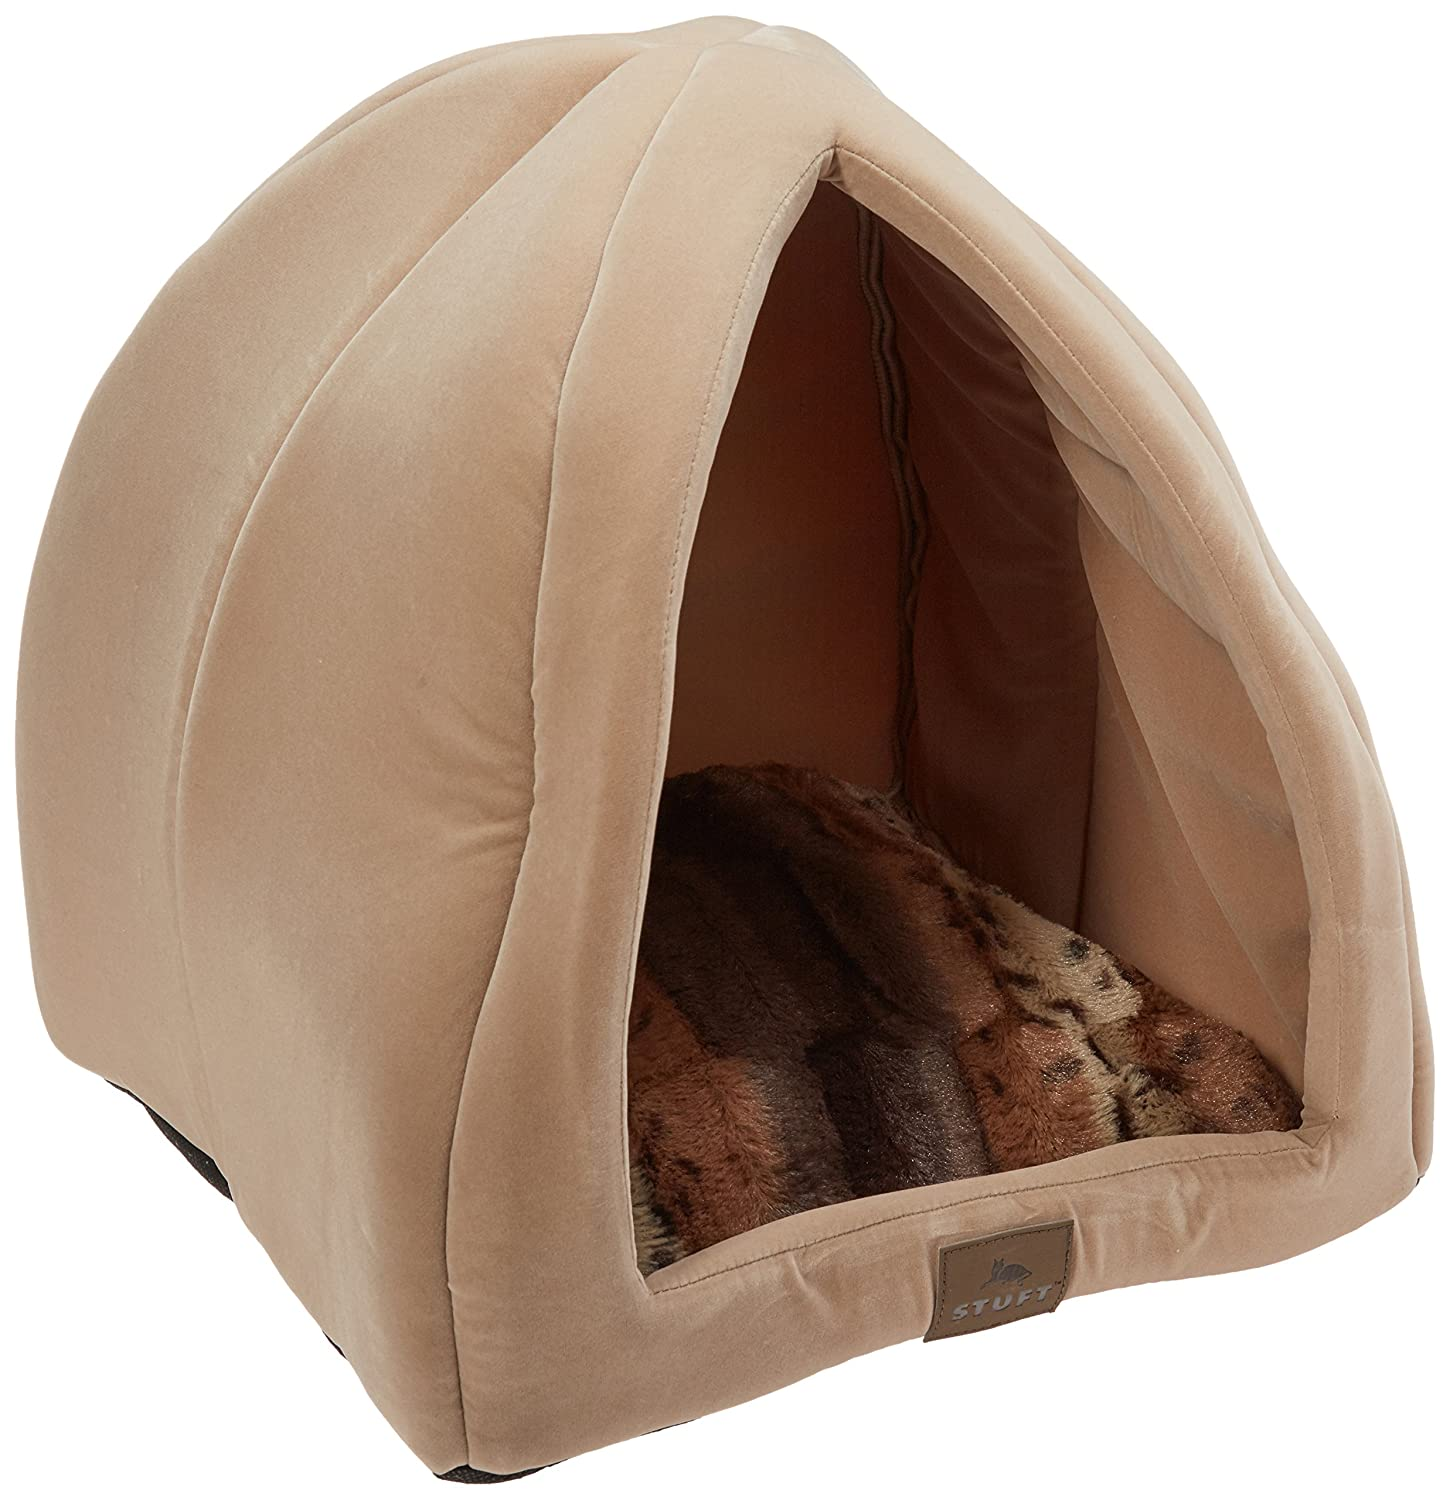 Stuft Purr Tent Moccasin Cat Bed 85%OFF